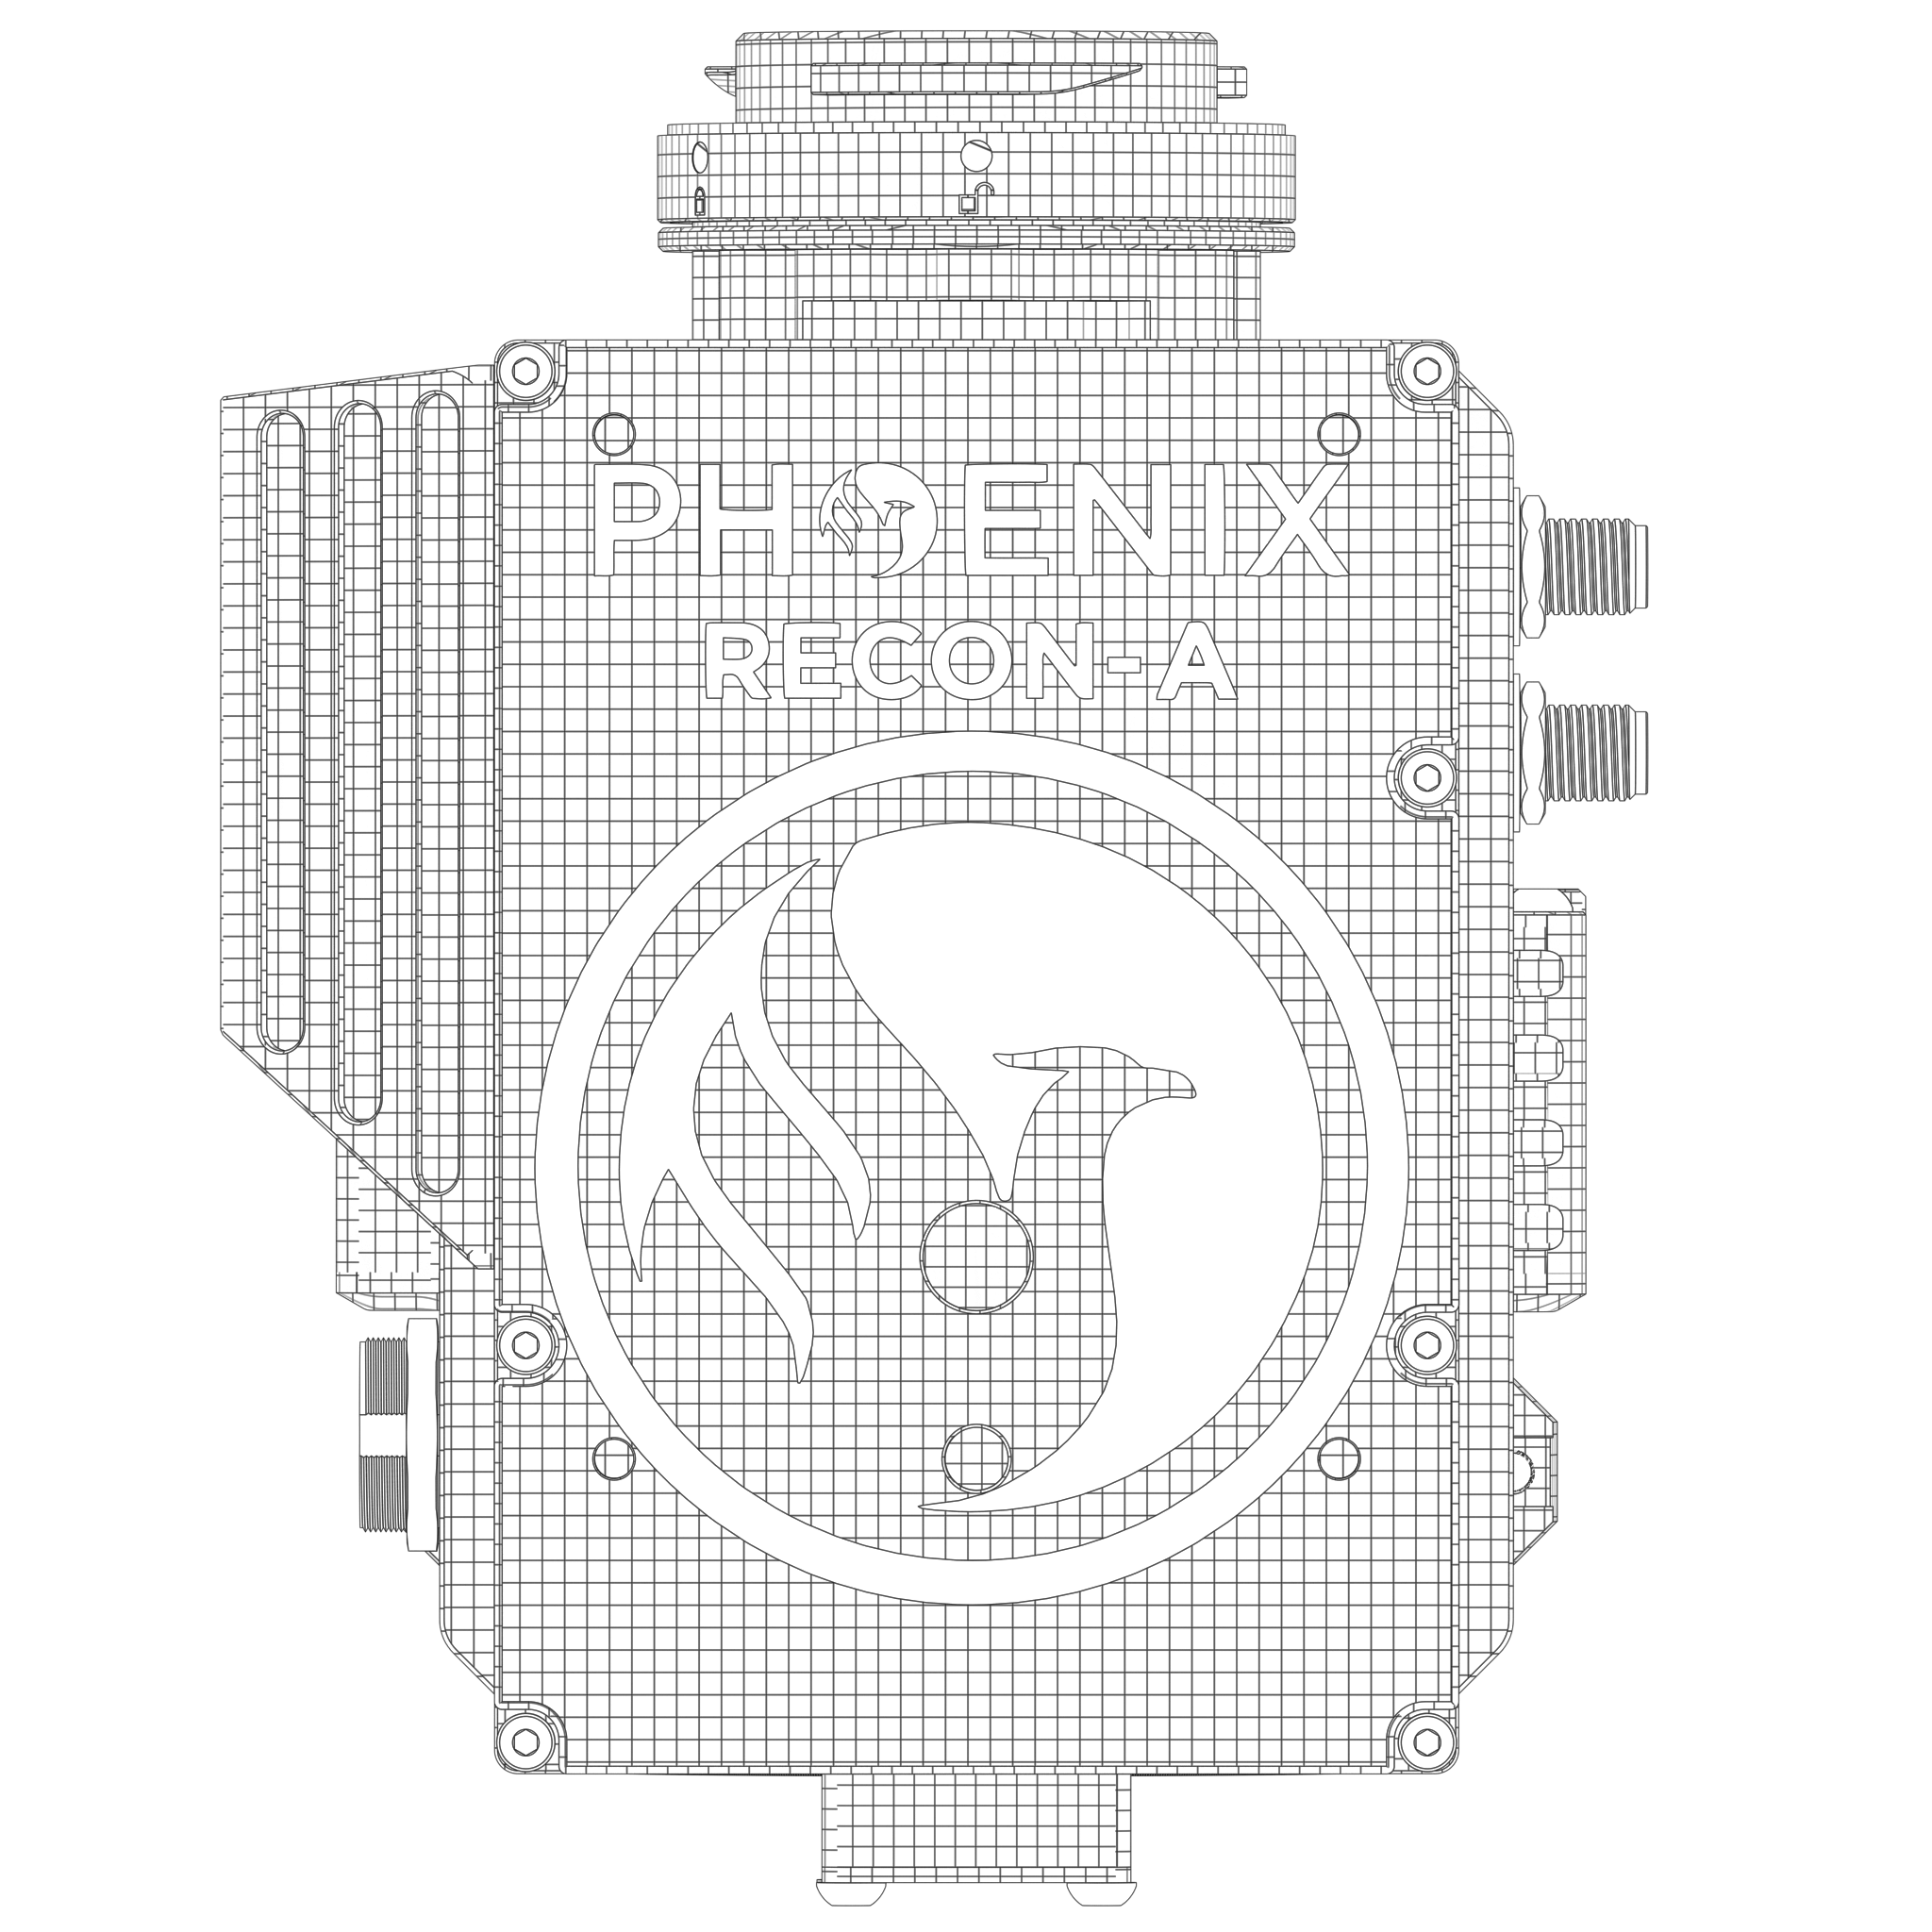 Recons_outlines_r02_00002